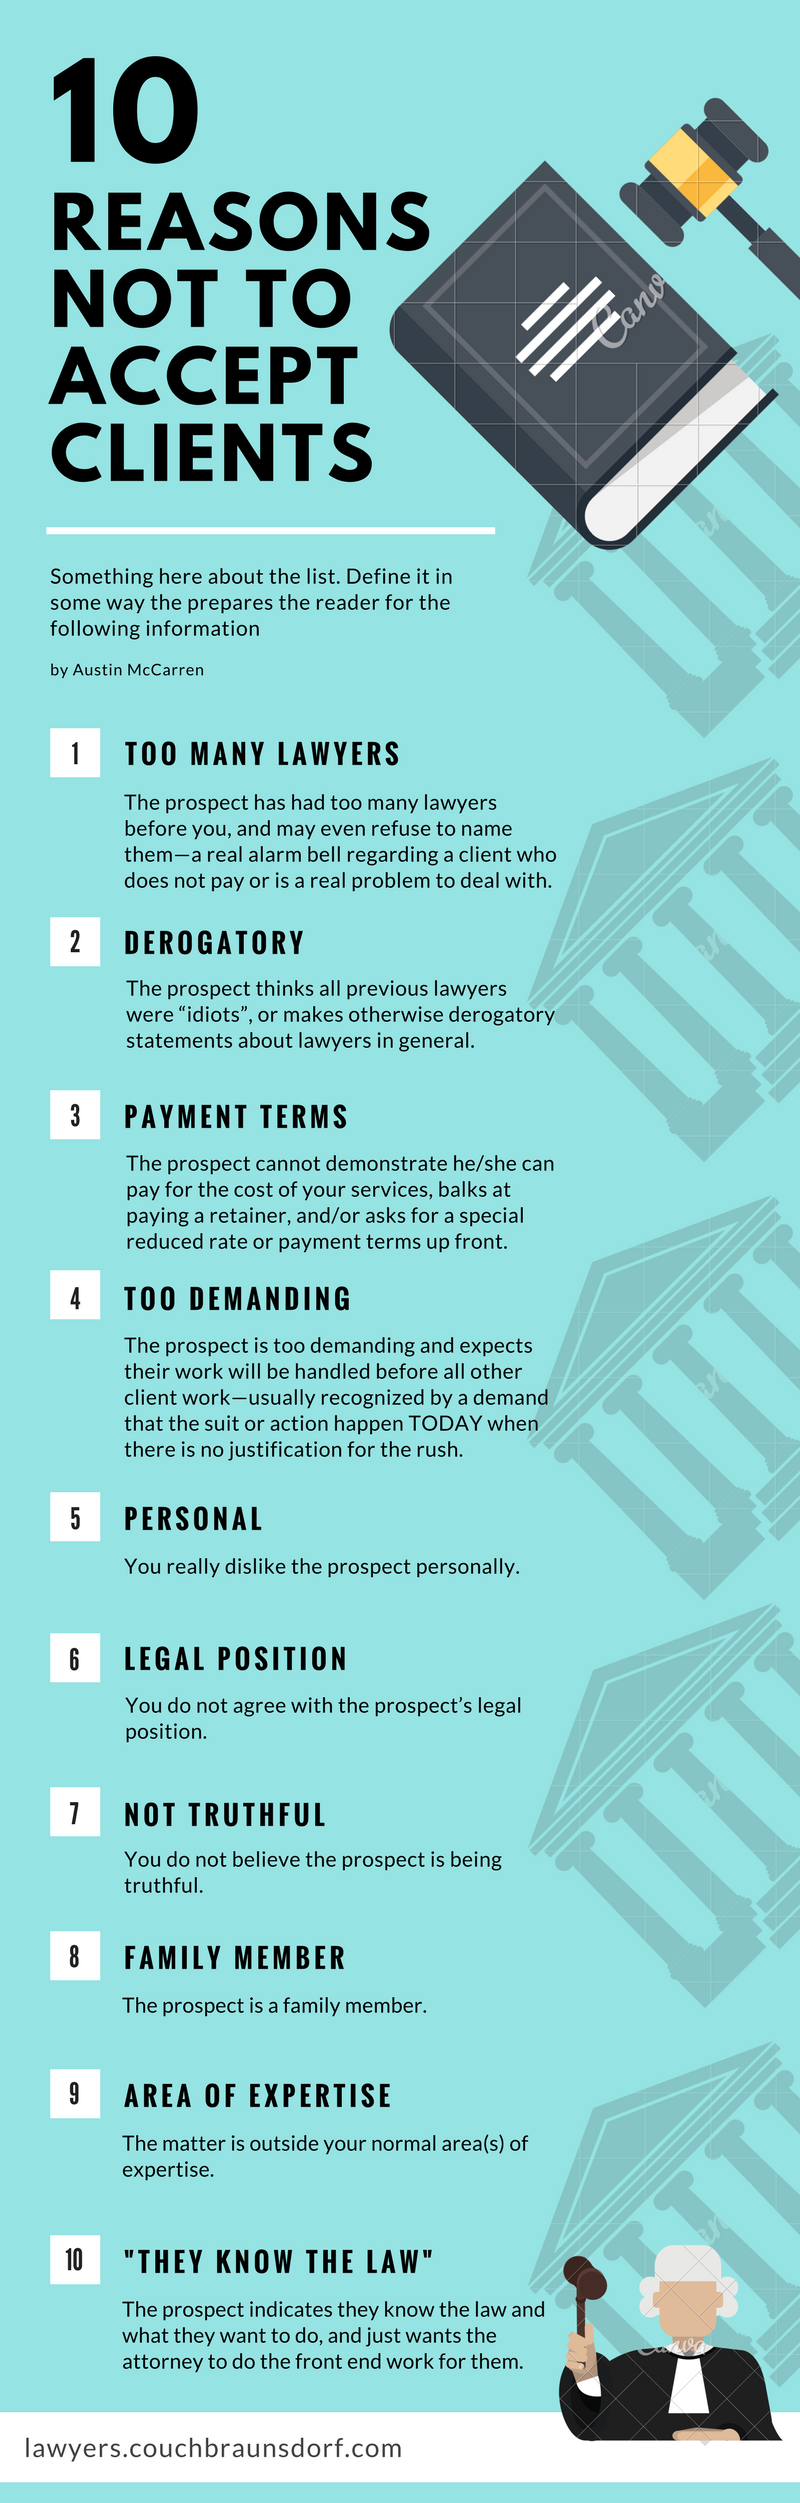 10 Reasons Not To Accept Clients